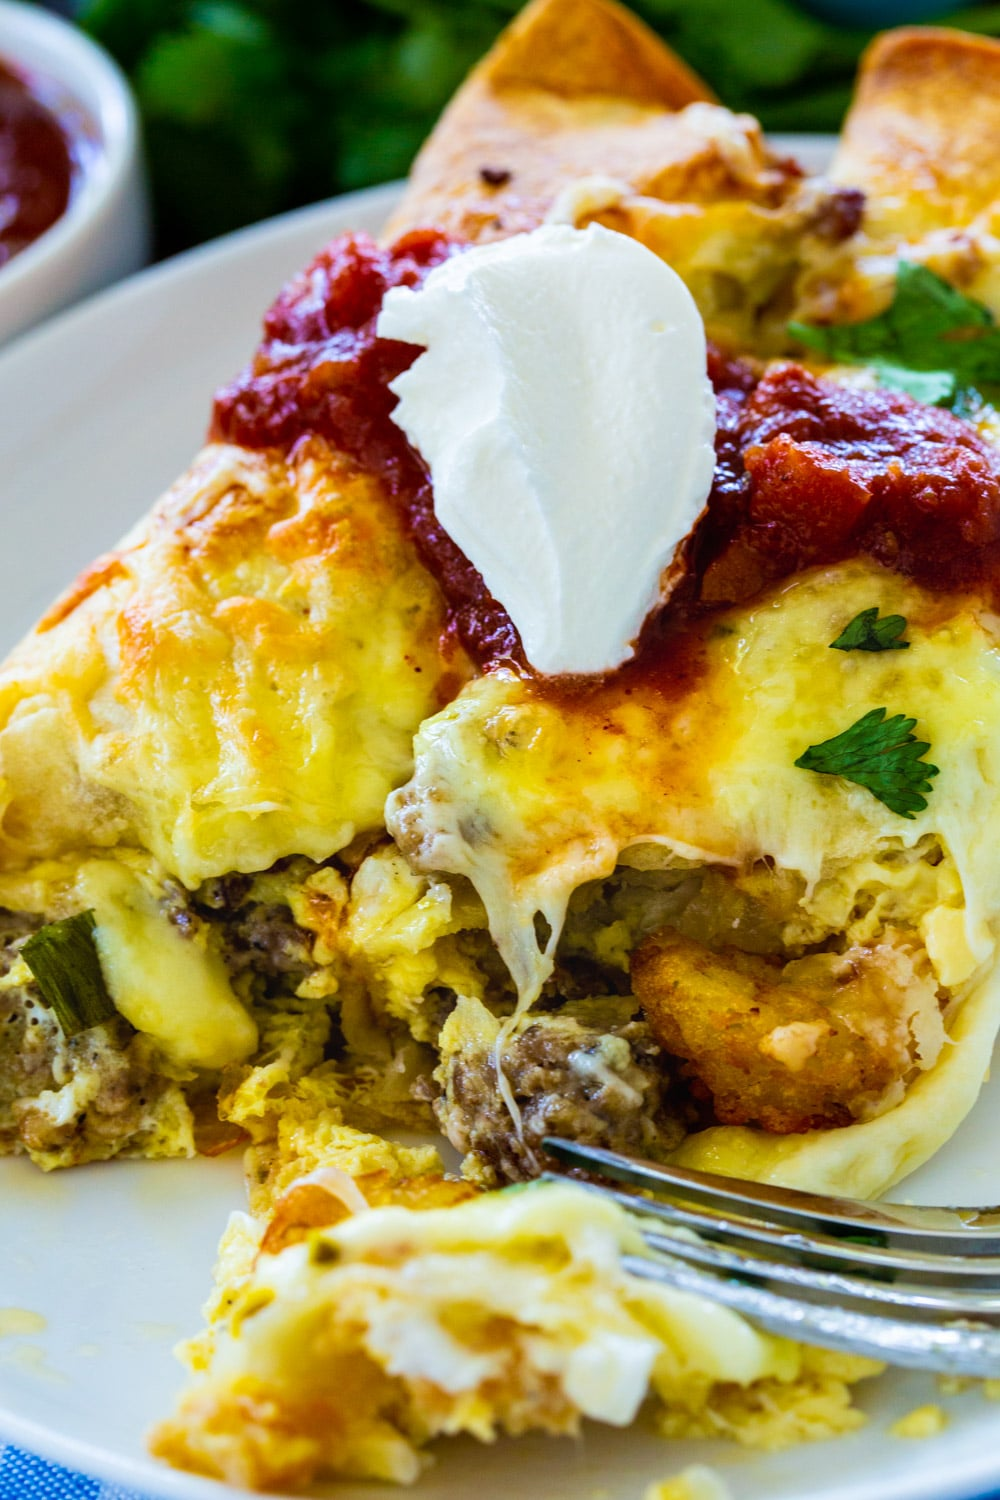 Fork cutting into Spicy Sausage Breakfast Enchilada